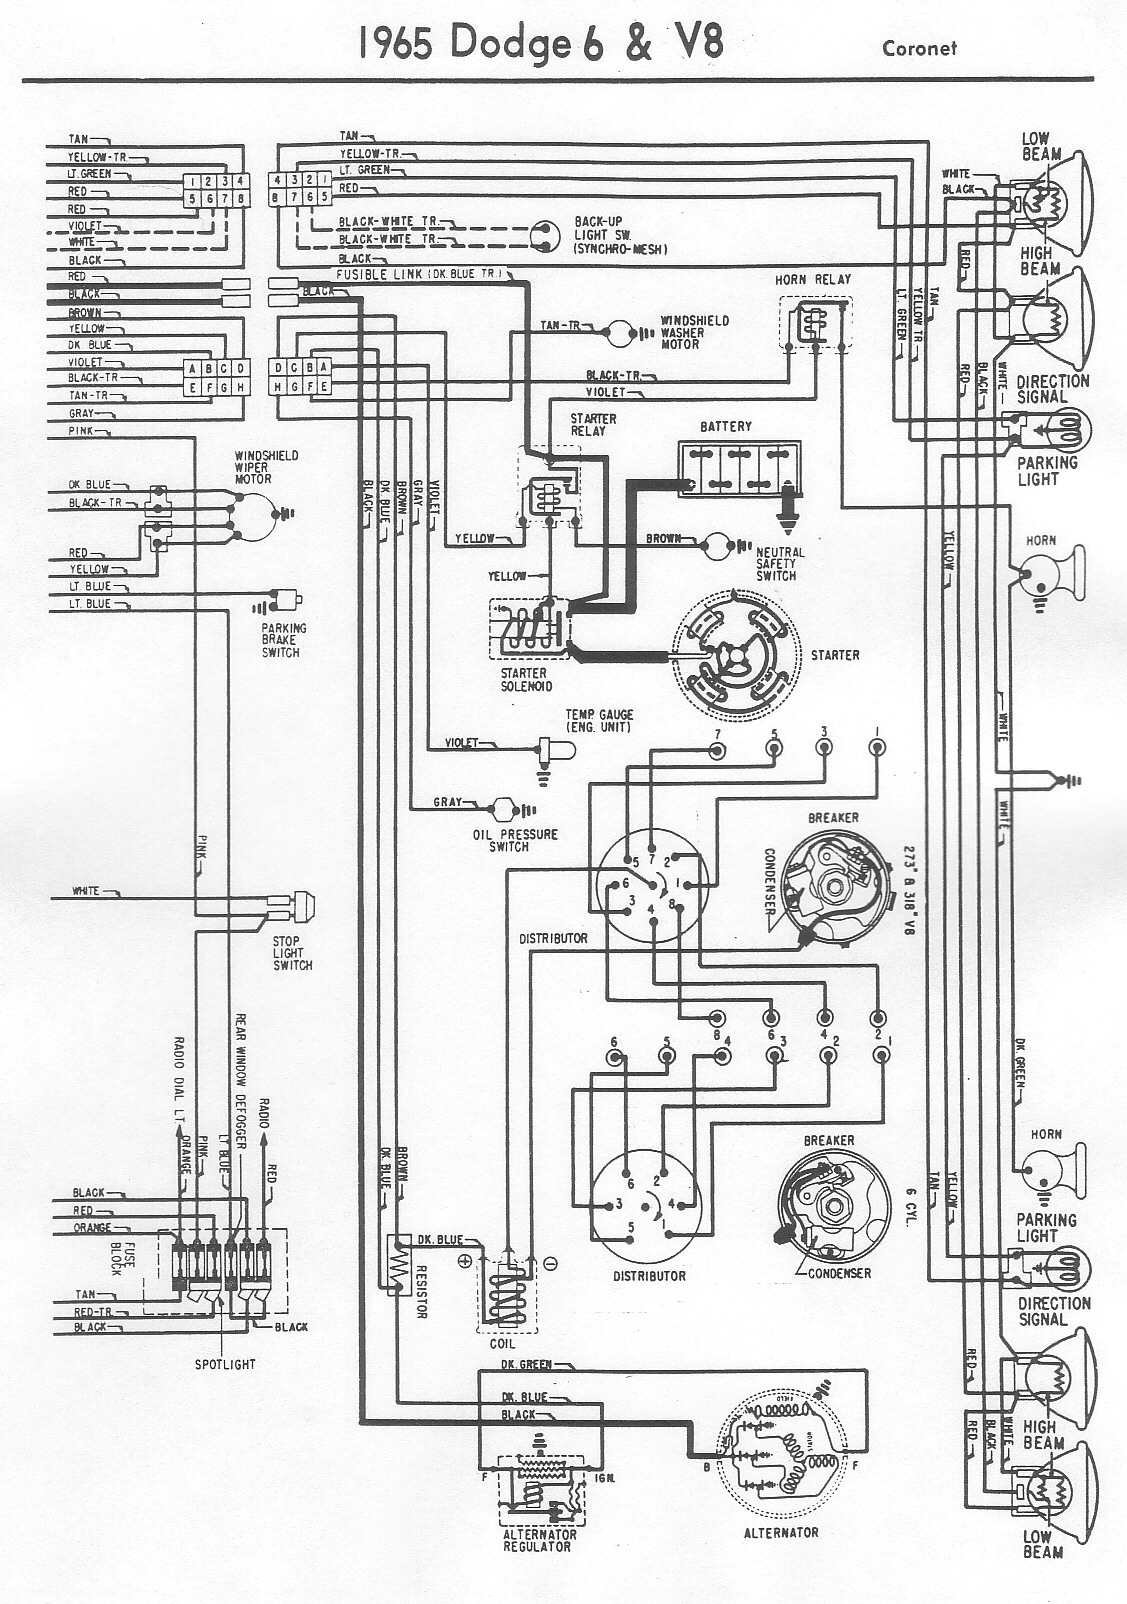 1965 dodge wiring diagram wiring diagram img 1965 dodge coronet wiring diagram [ 1127 x 1604 Pixel ]